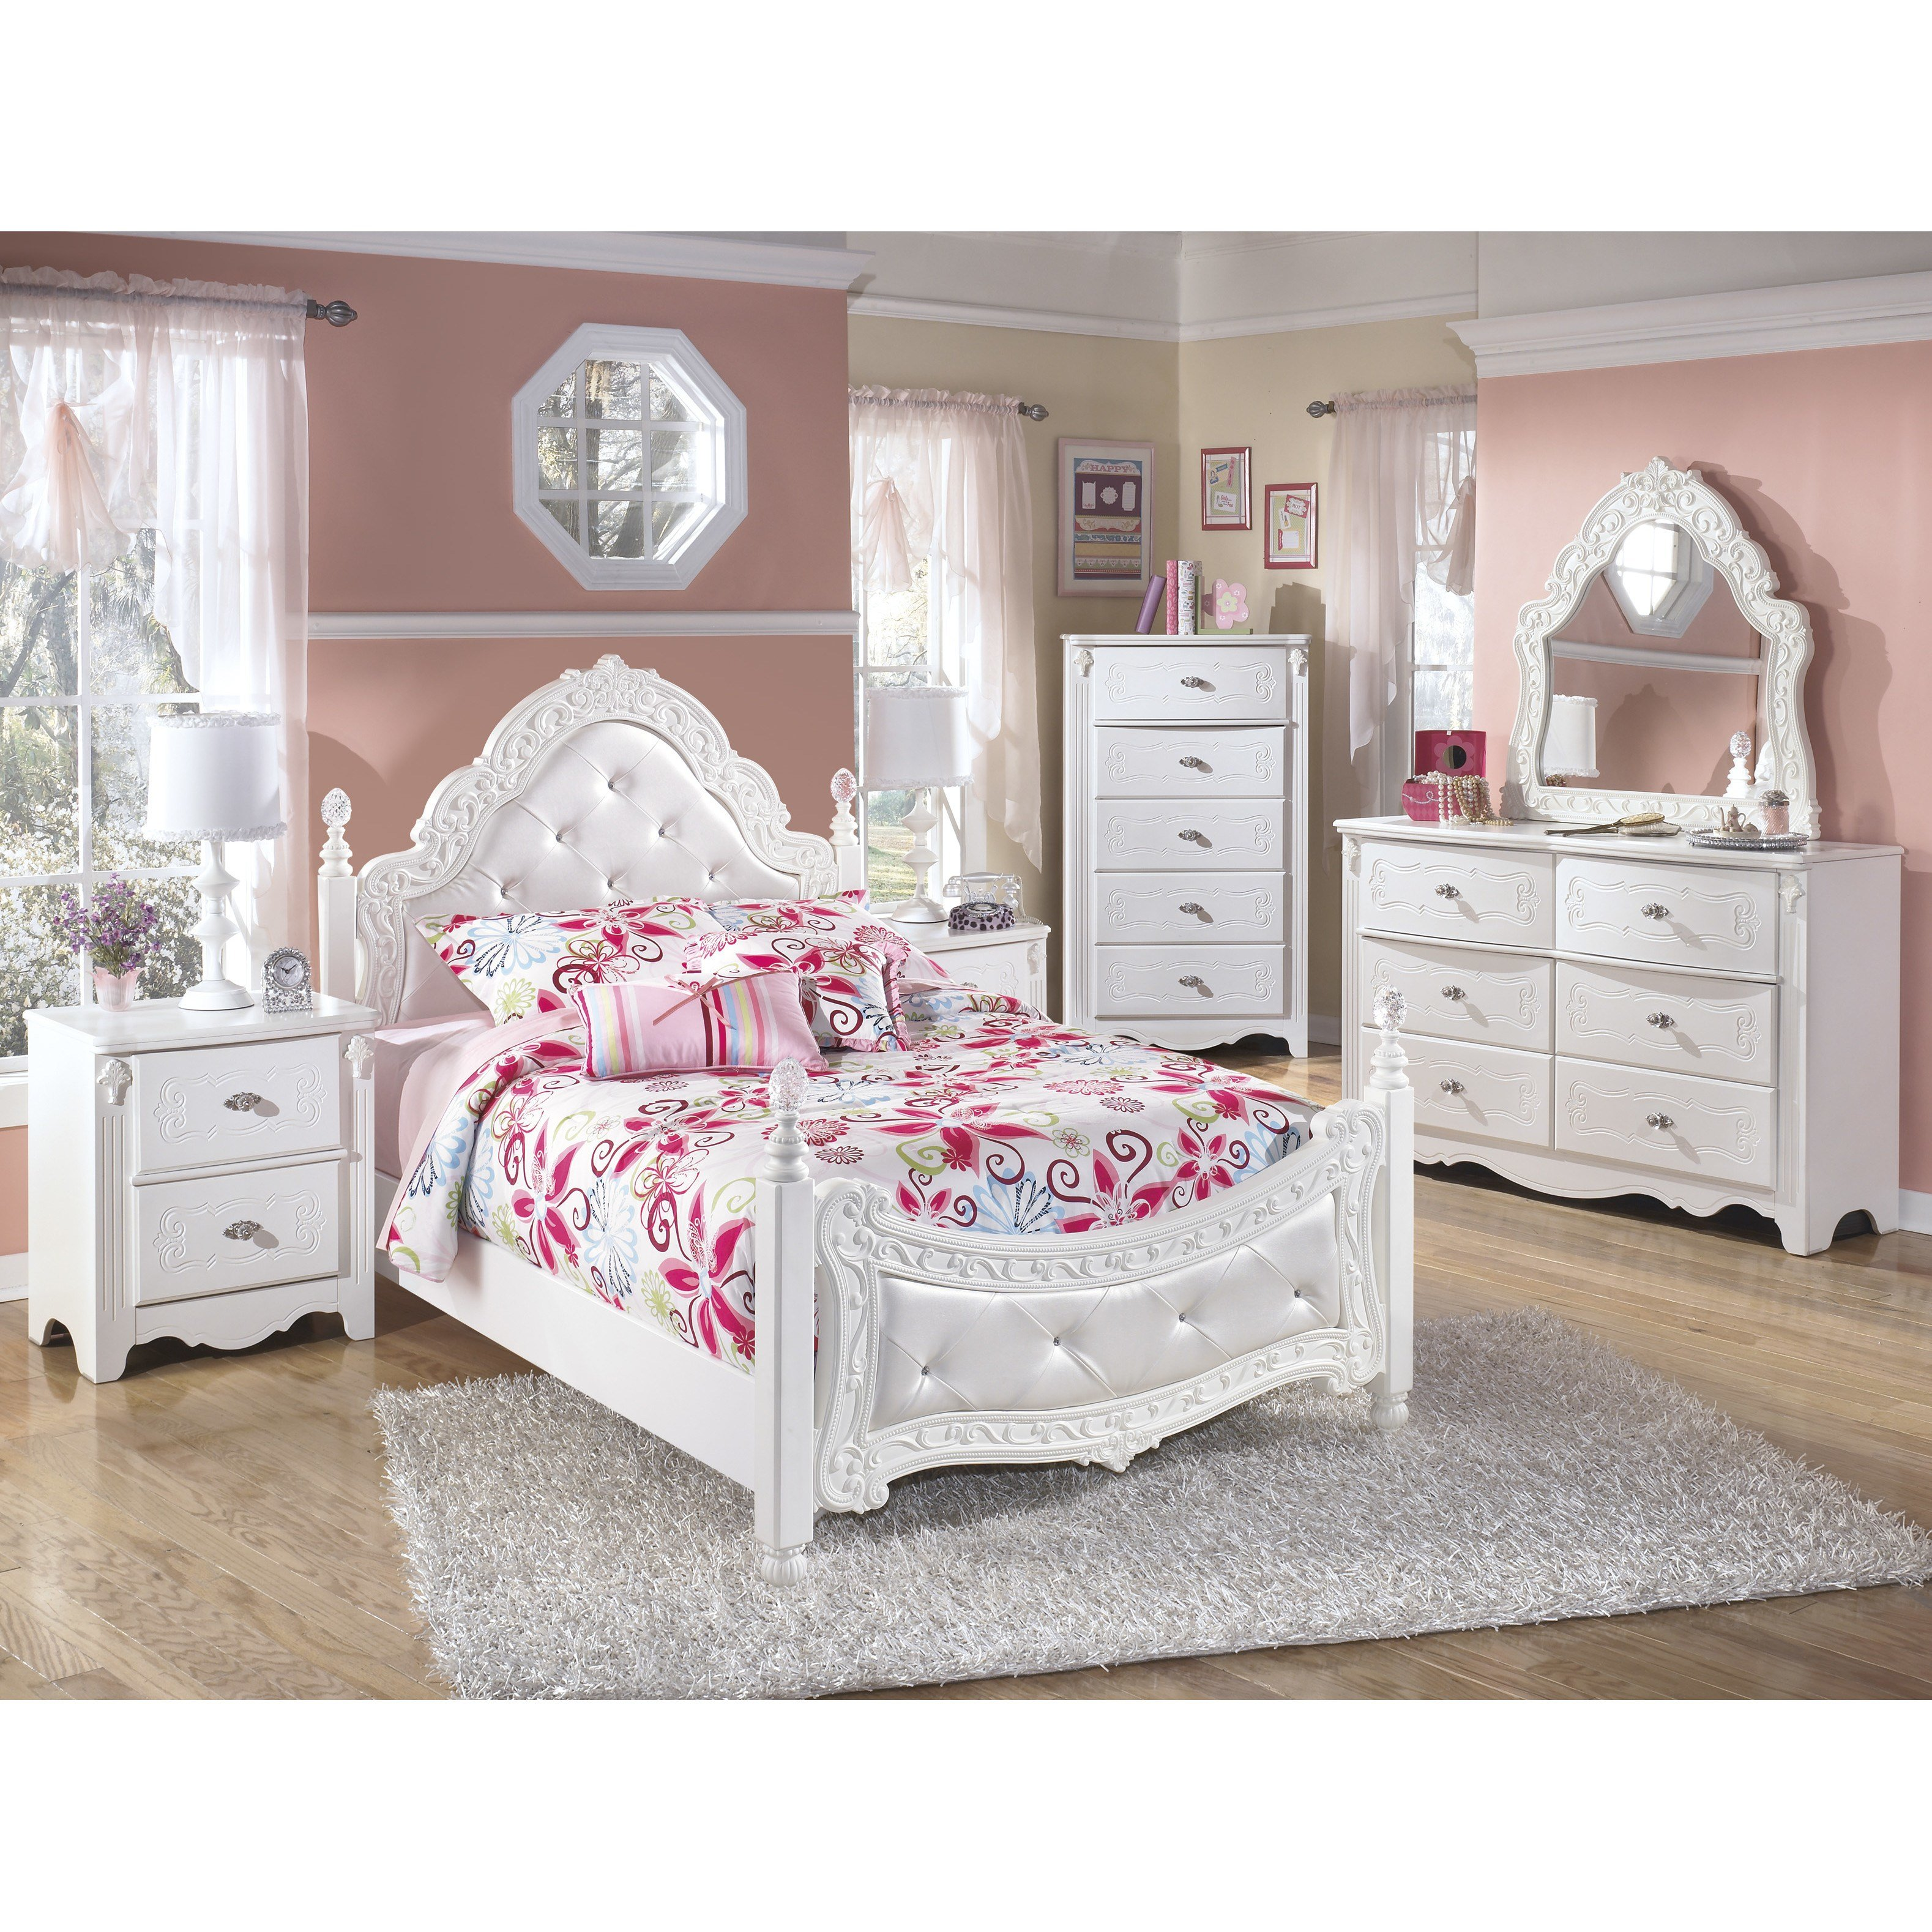 Best Signature Design By Ashley Exquisite Four Poster Customizable Bedroom Set Reviews Wayfair With Pictures